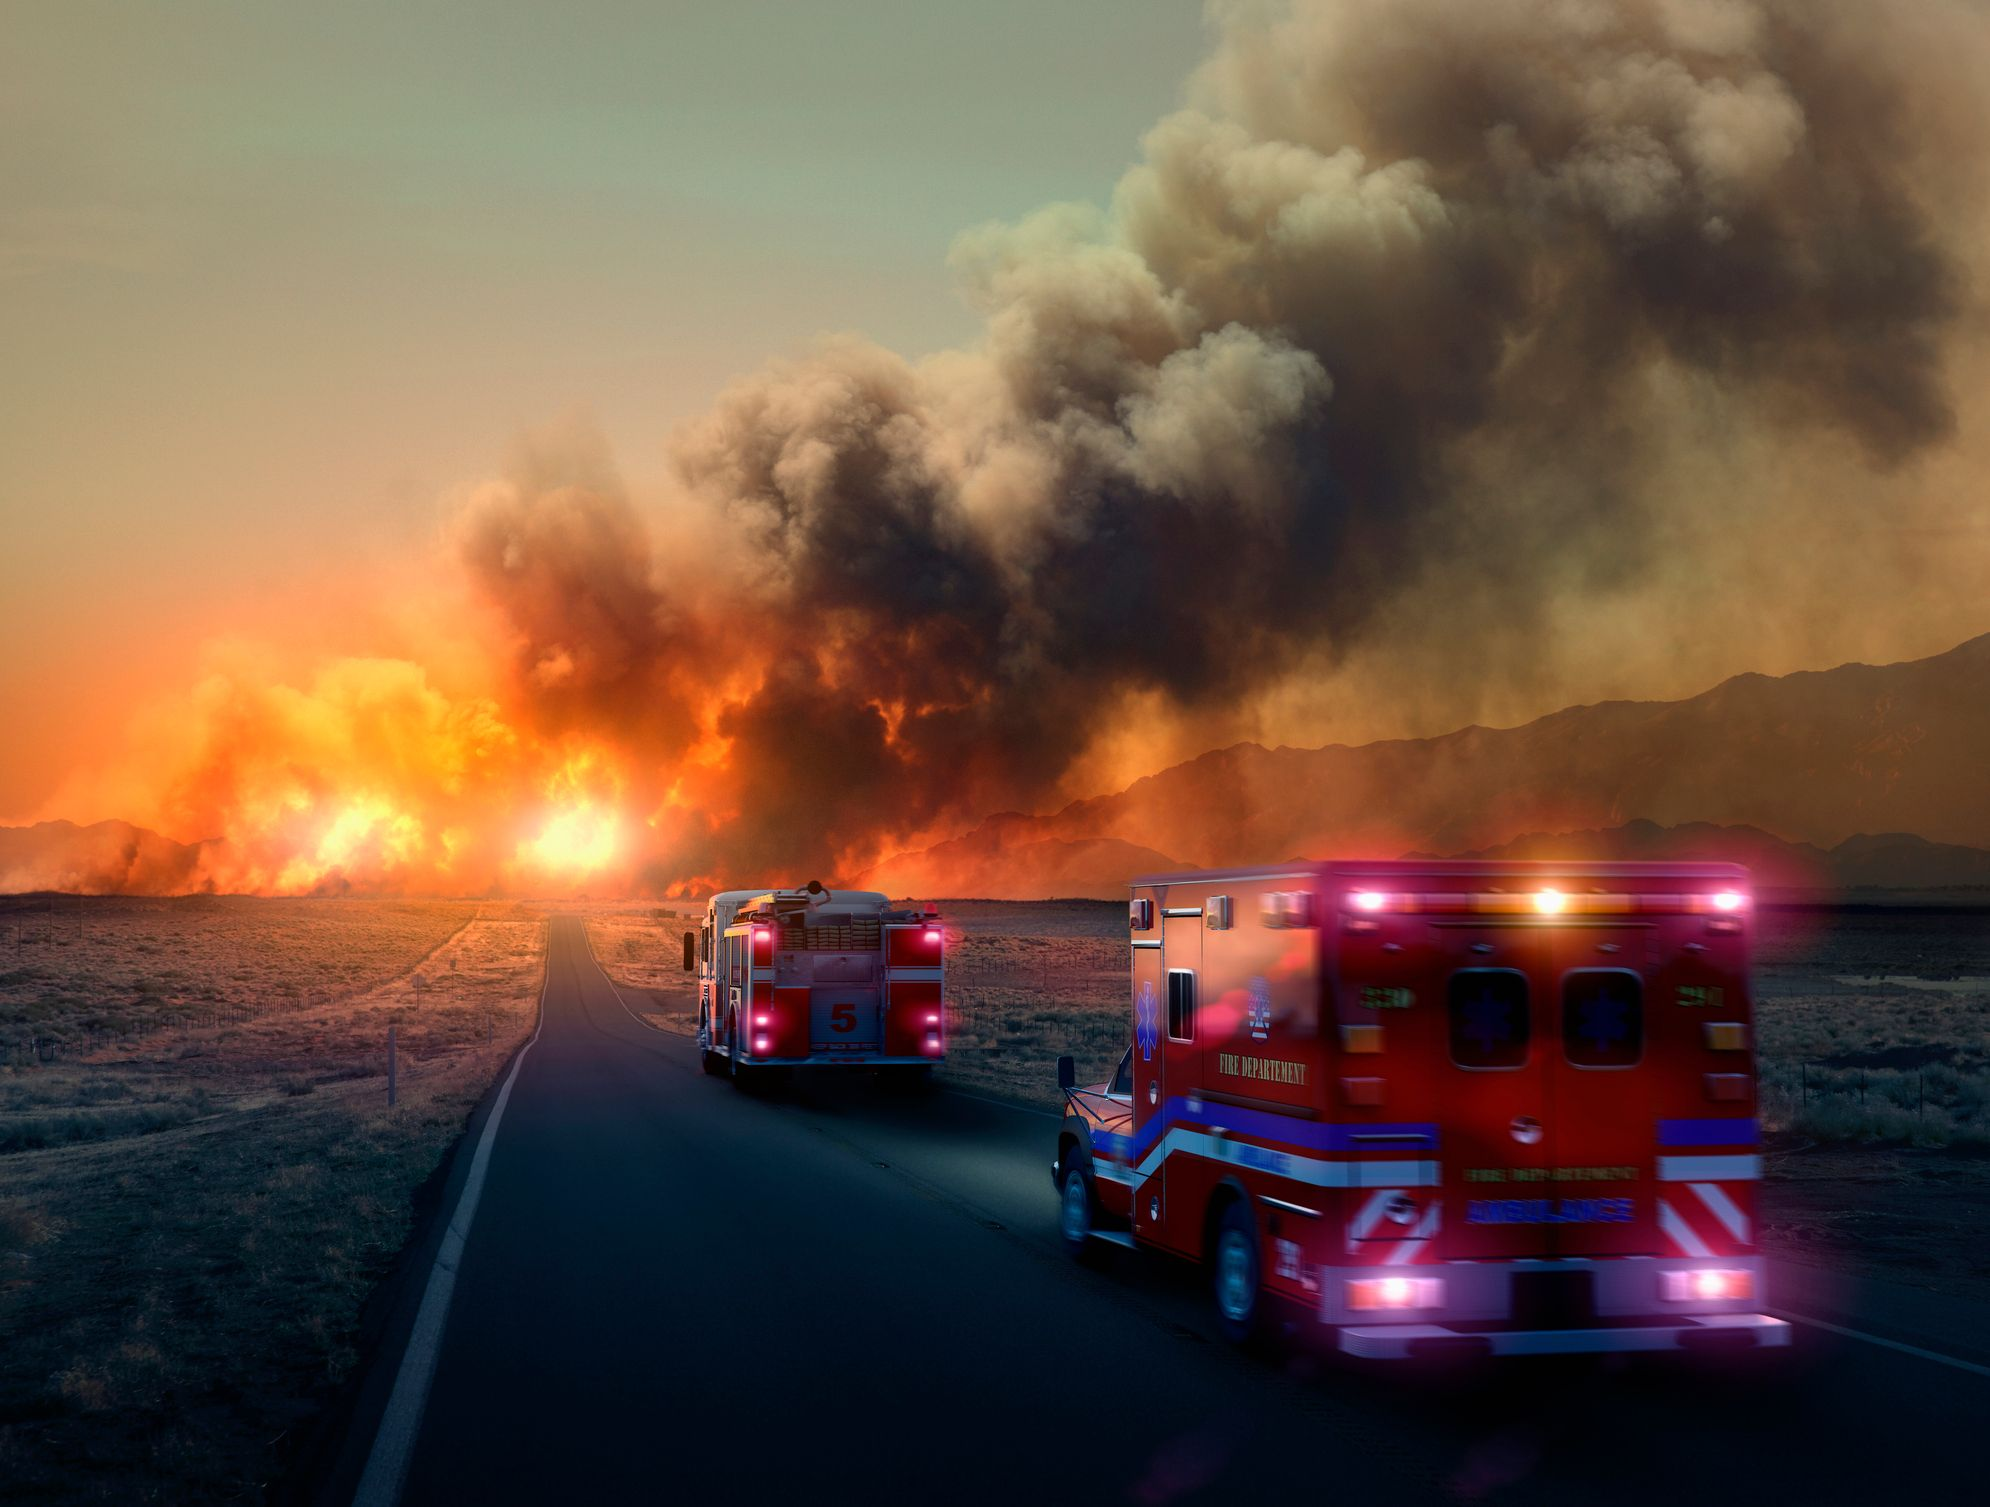 Ambulances going toward a fire in the woods. | Photo: Getty Images